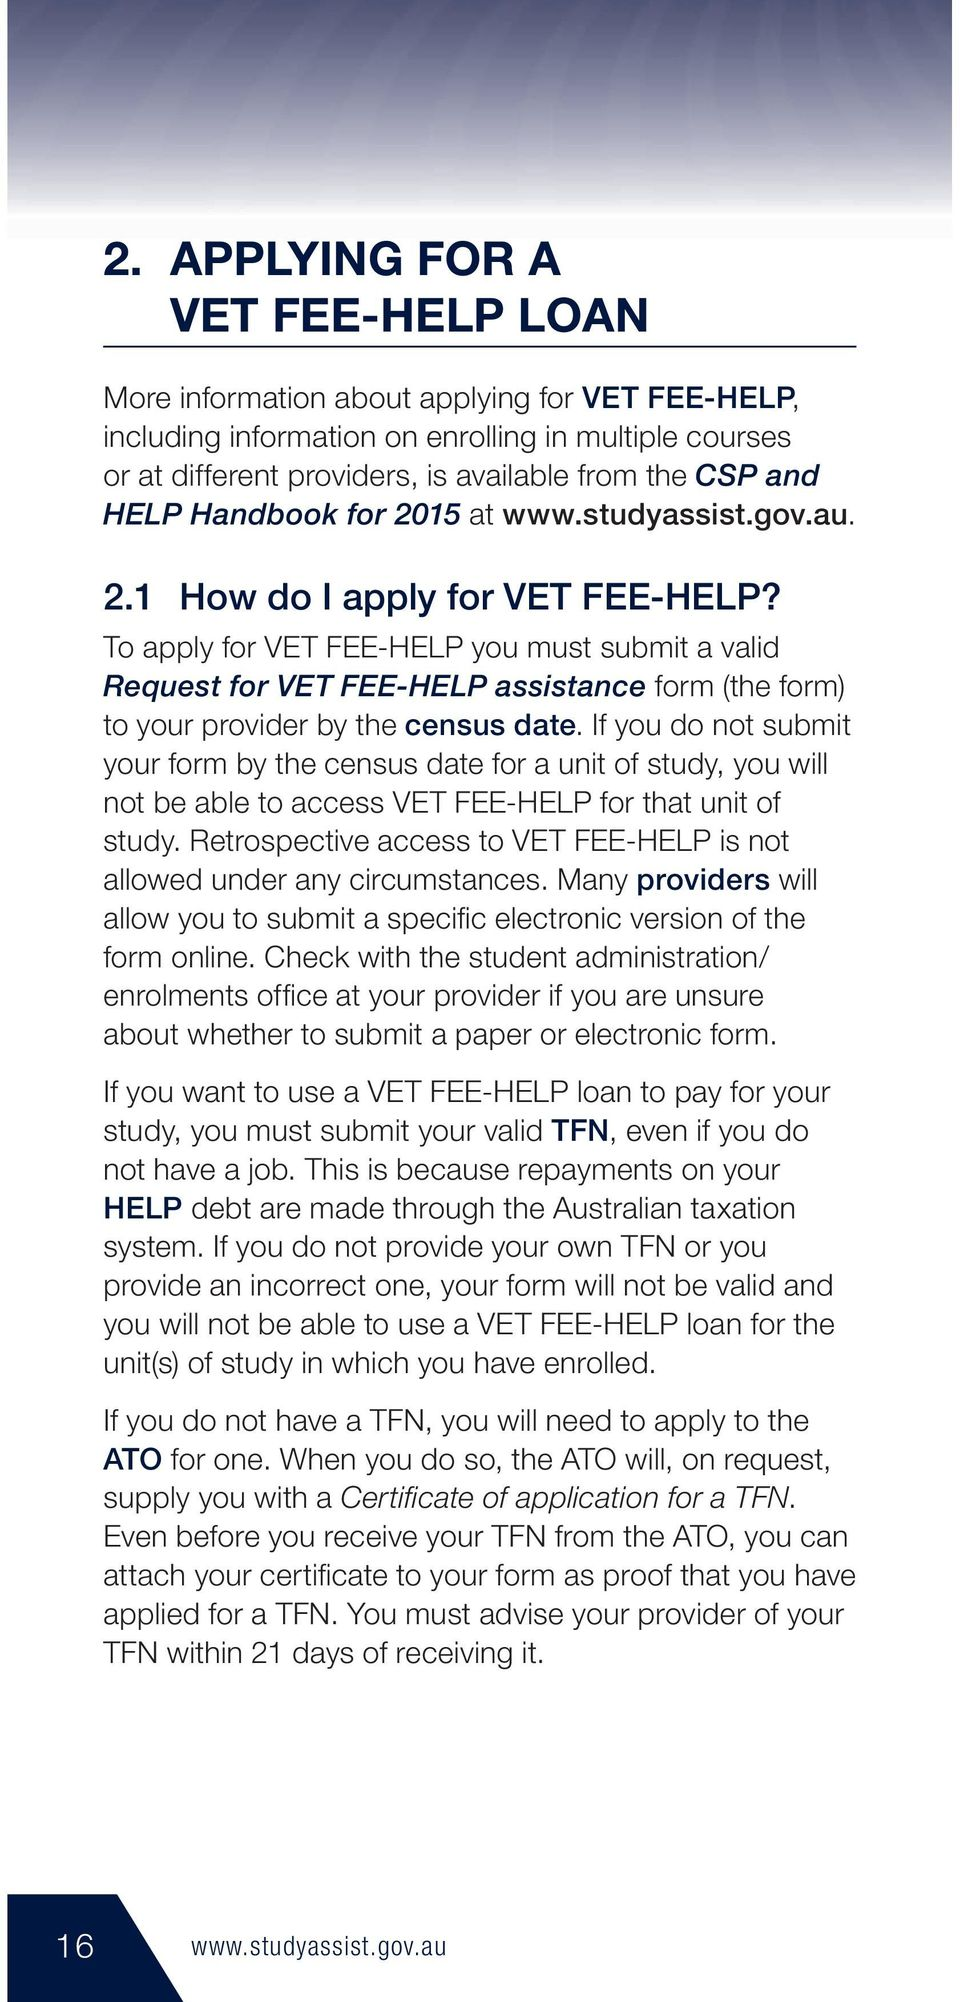 To apply for VET FEE-HELP you must submit a valid Request for VET FEE-HELP assistance form (the form) to your provider by the census date.